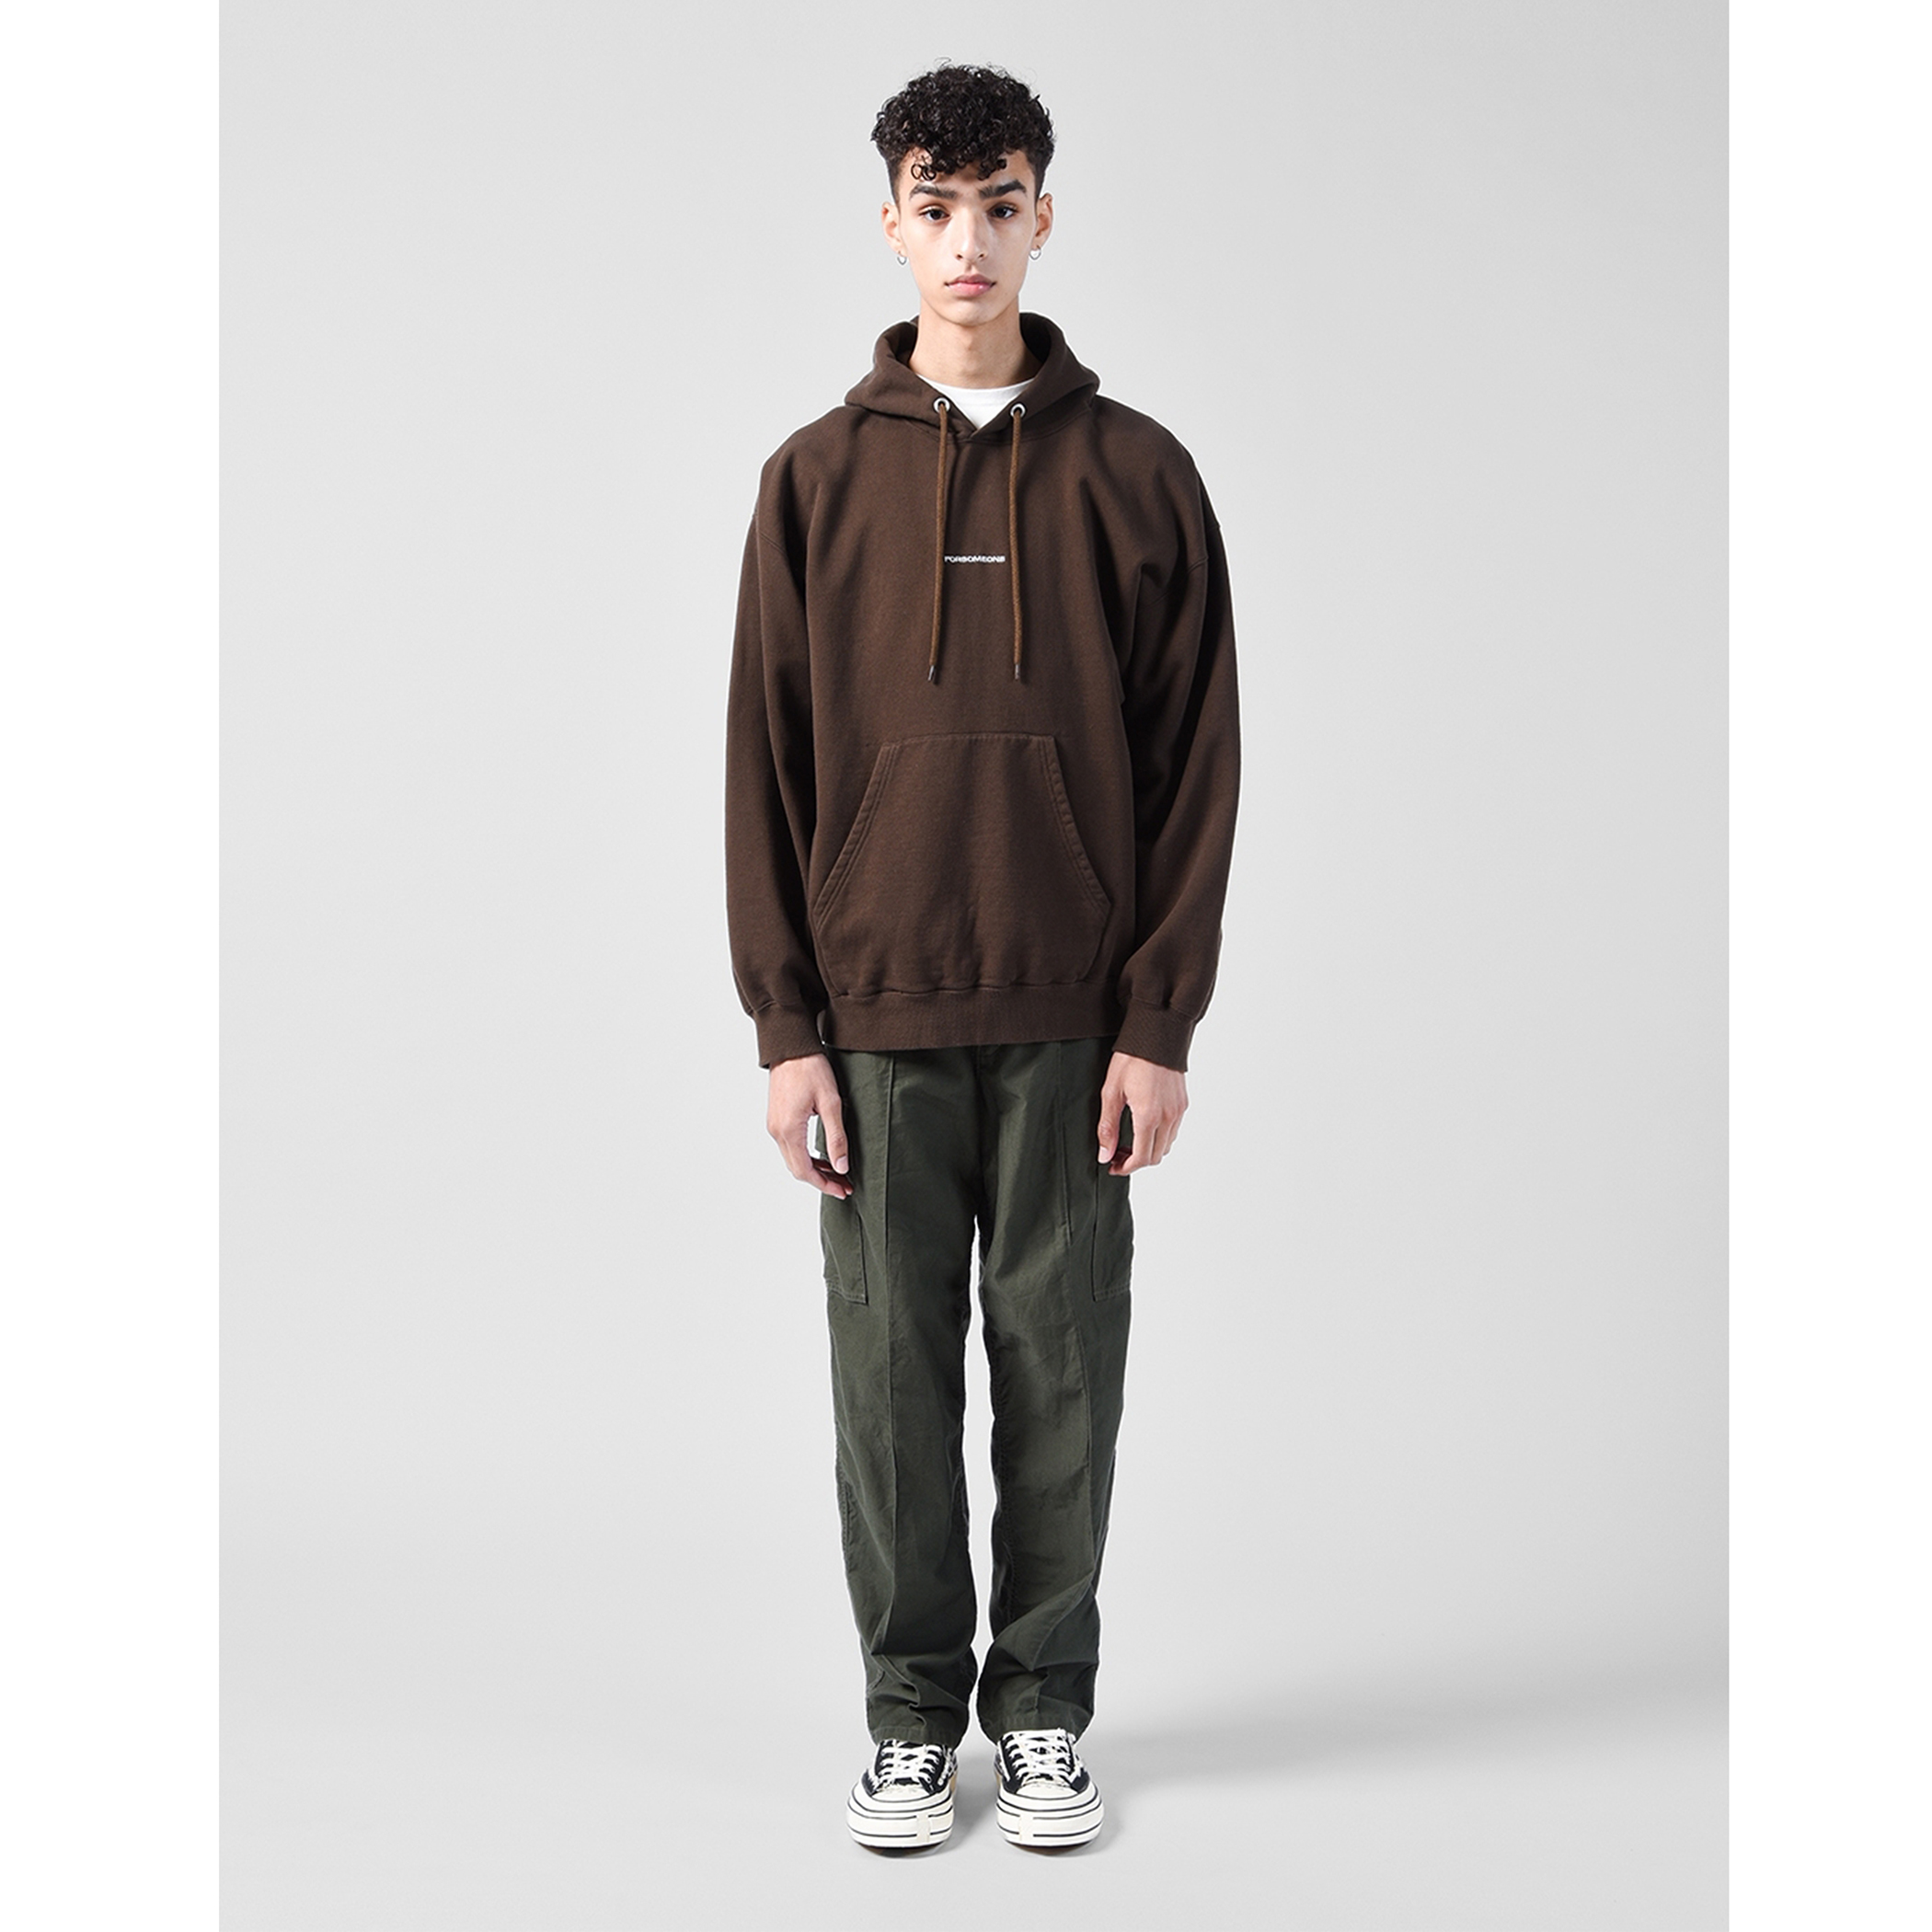 FSO EMBRO HOODIE 詳細画像 Brown 1